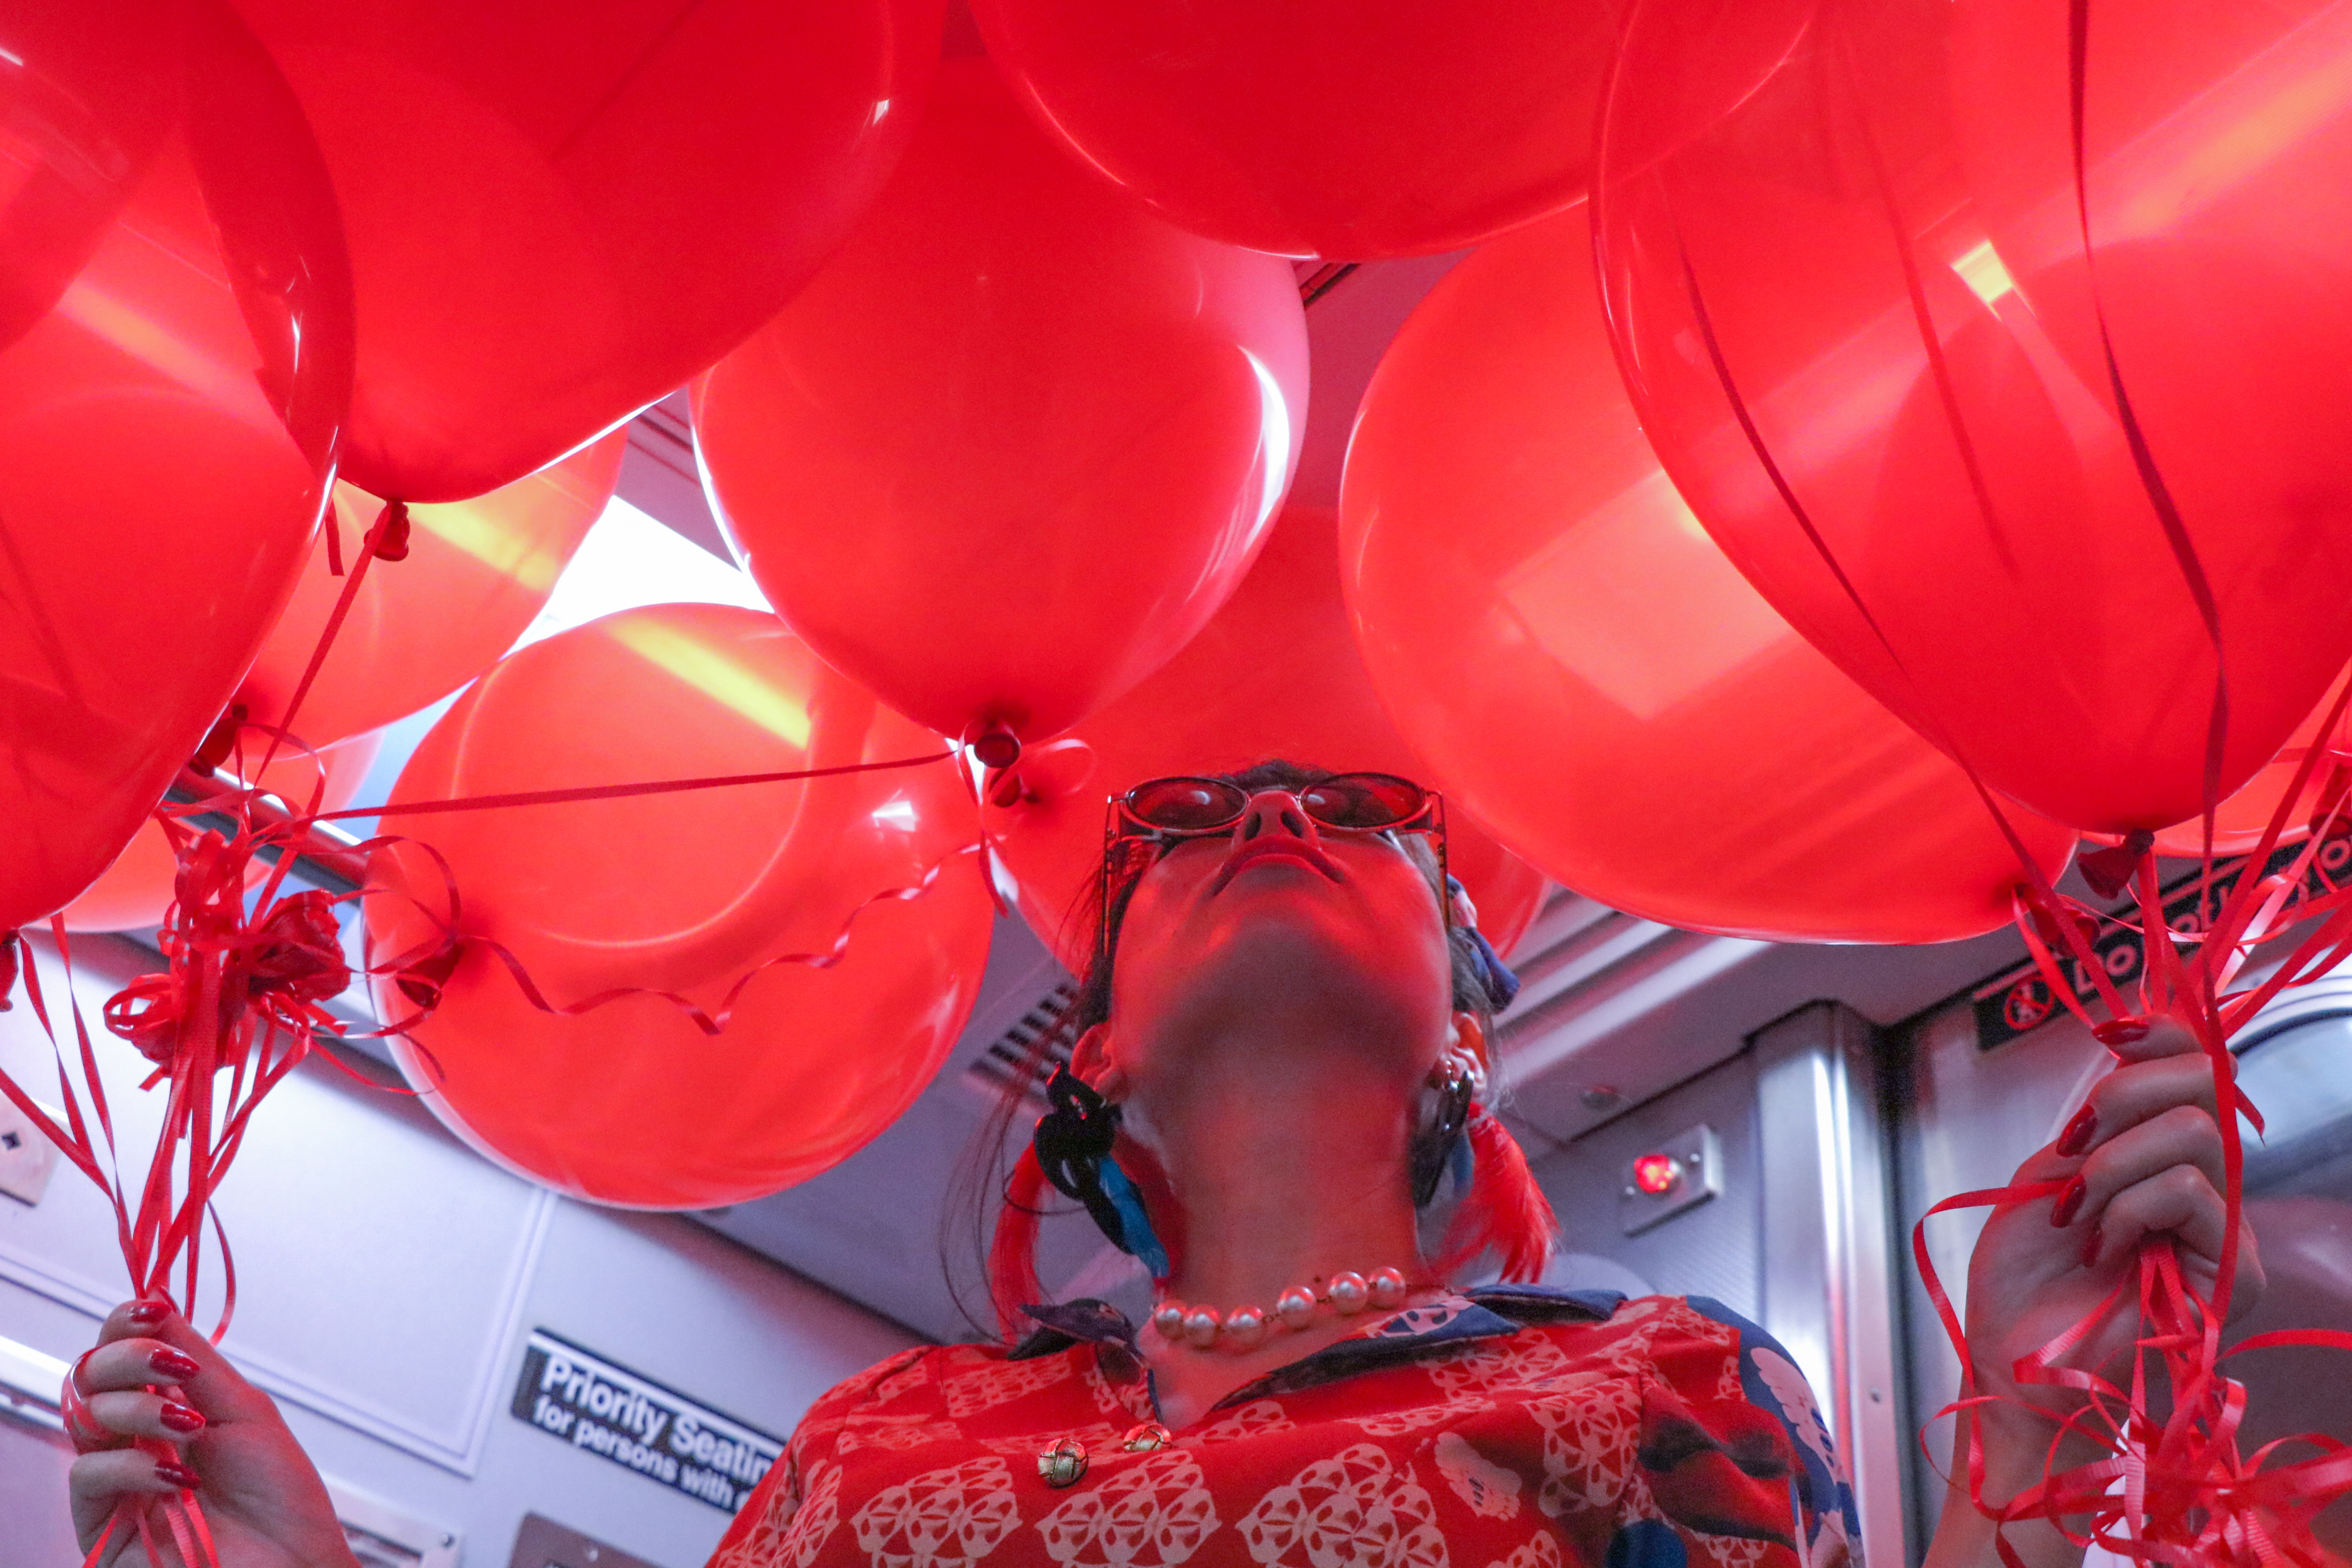 With red balloons in the NY subway